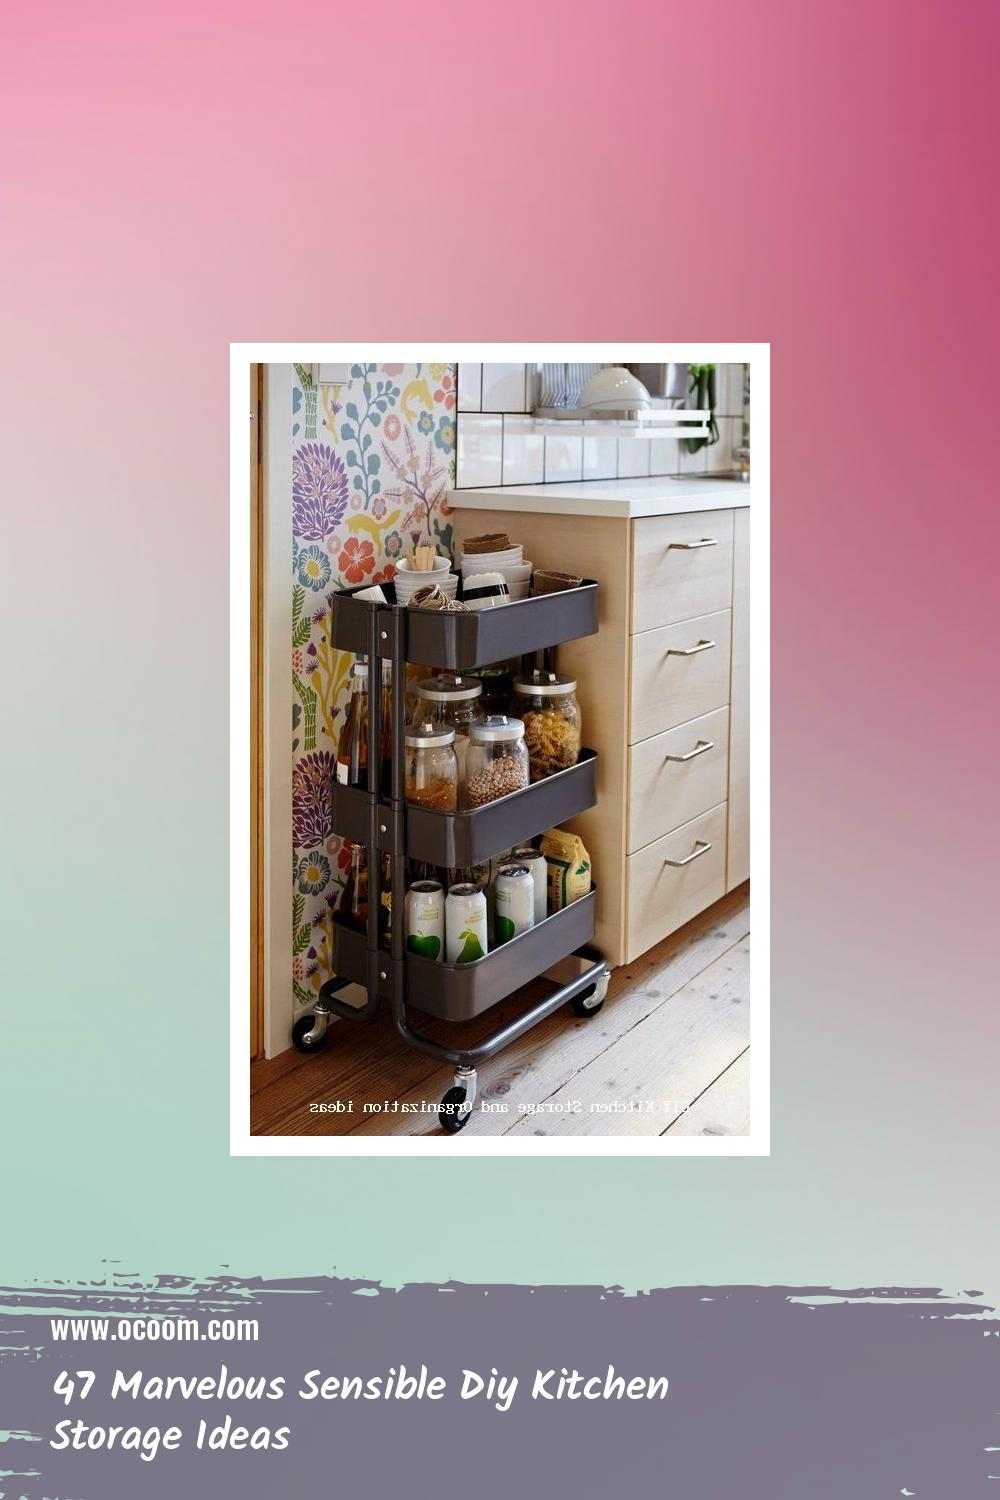 47 Marvelous Sensible Diy Kitchen Storage Ideas 29